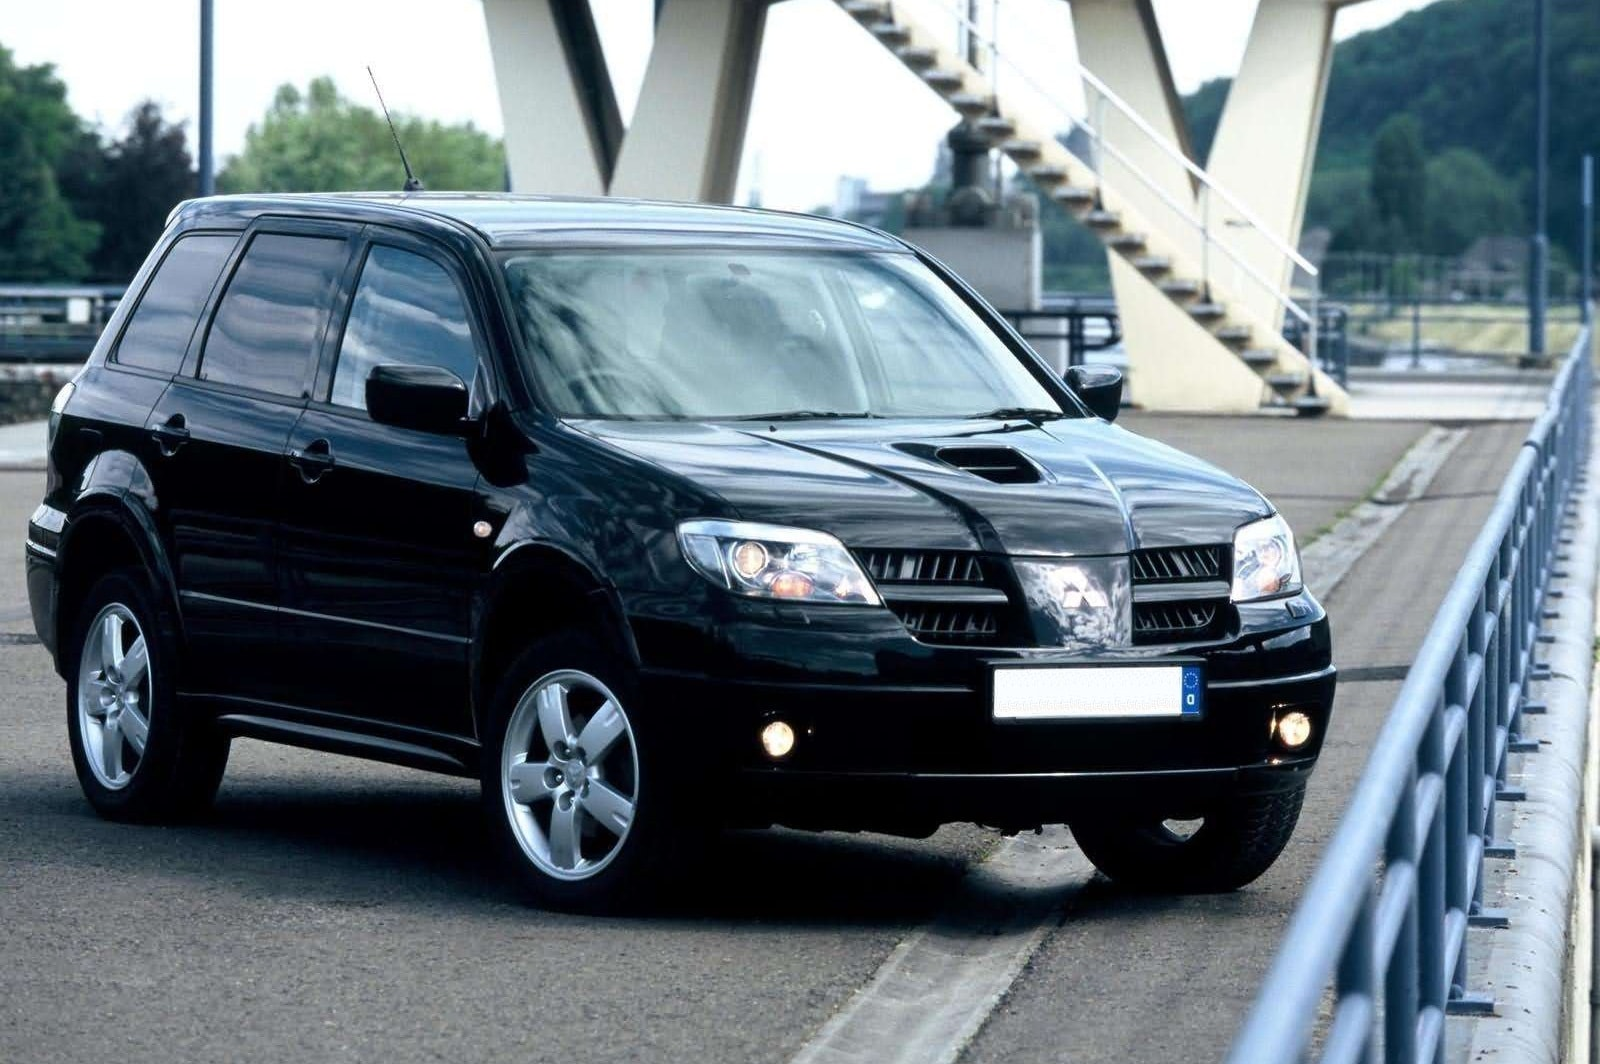 Mitsubishi Outlander Turbo, Мицубиси Аутлендер Турбо